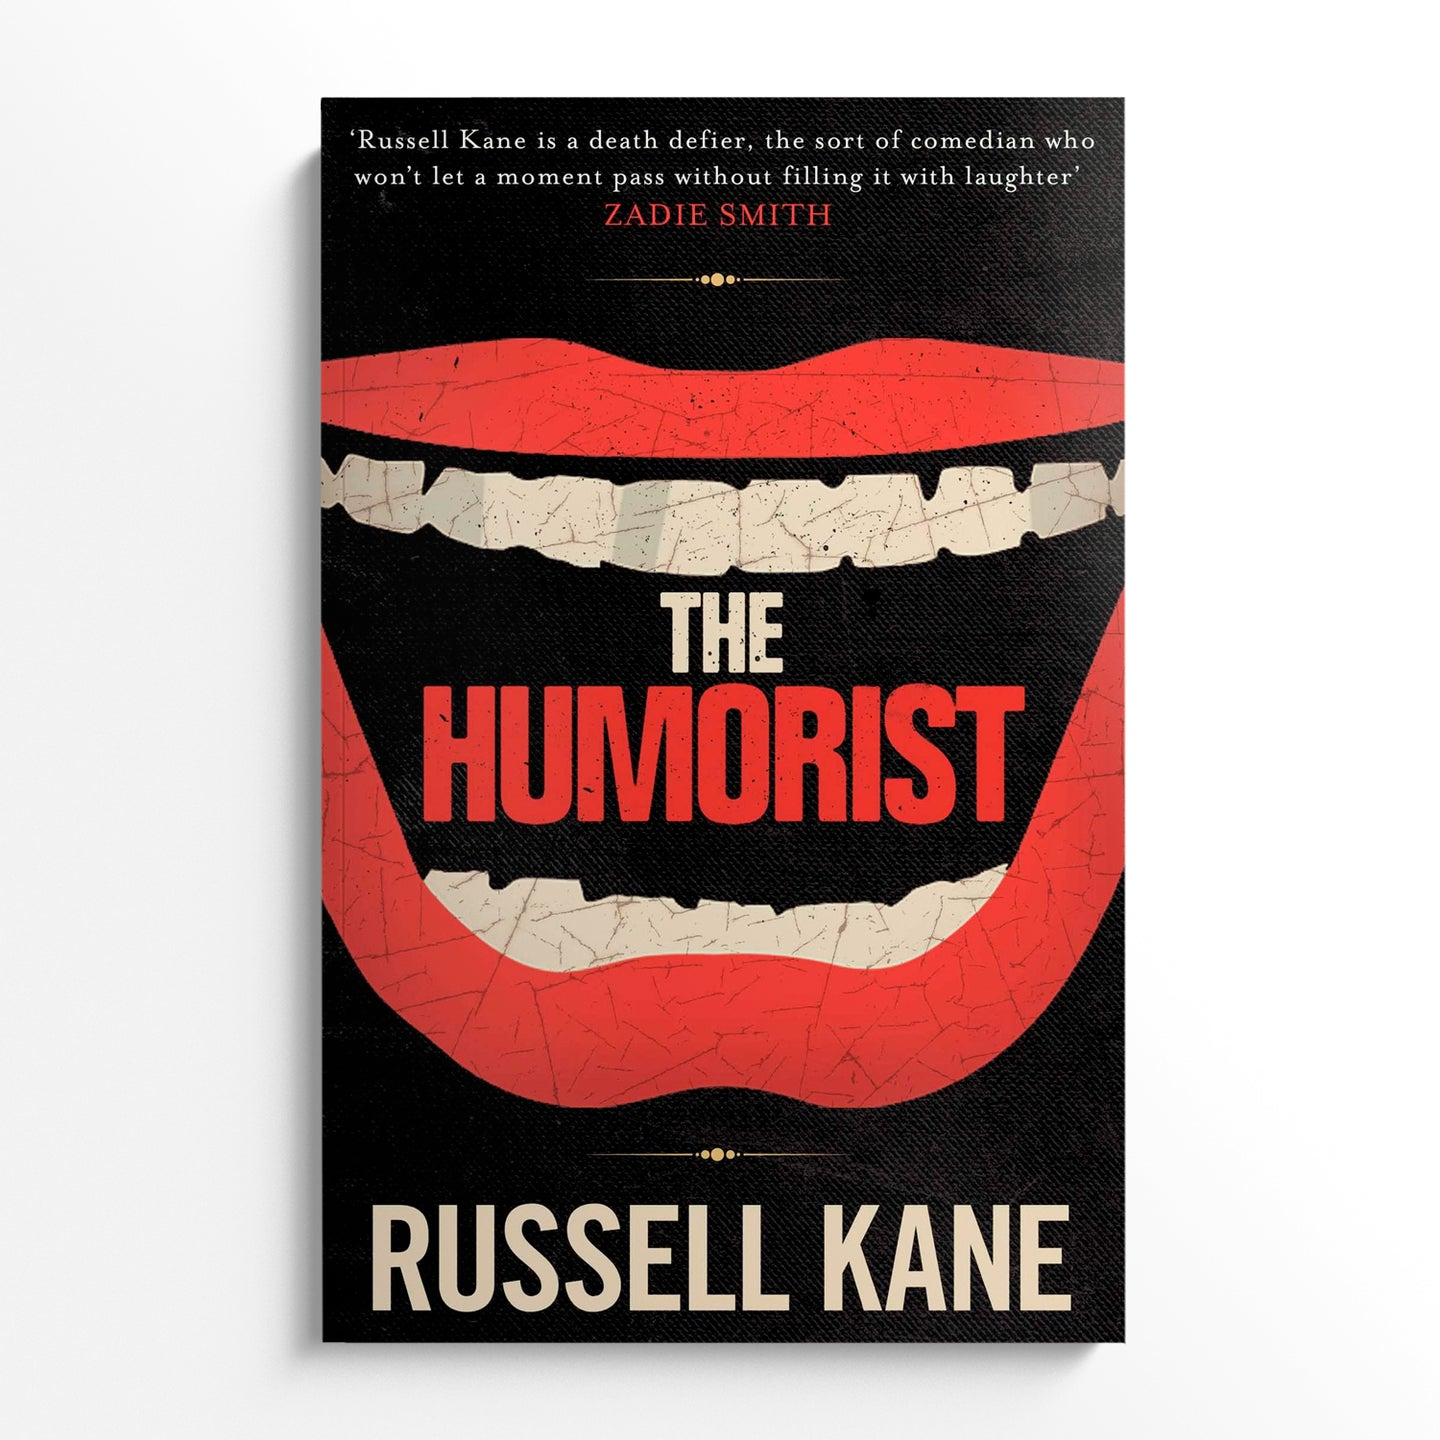 RUSSELL KANE | The humorist*